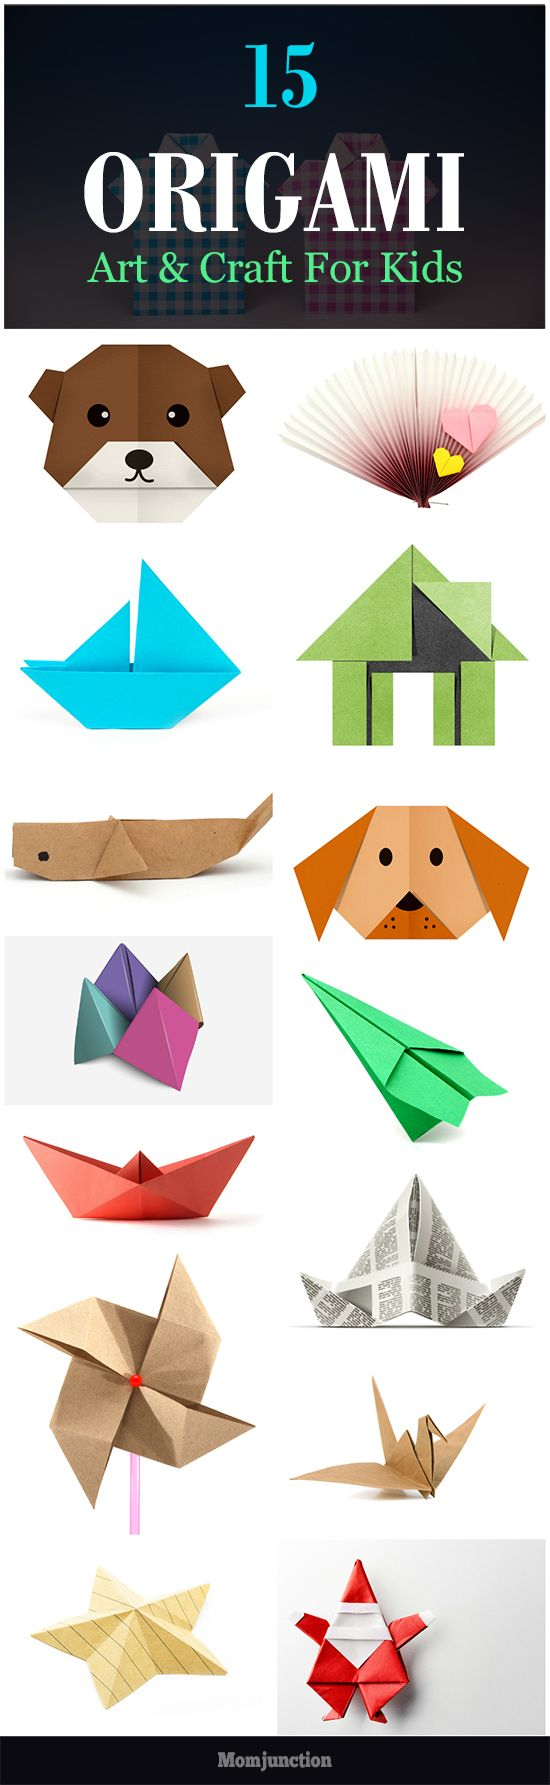 500 best diy kids parties and crafts images on pinterest top 15 paper folding or origami art craft for kids your kid can enjoy jeuxipadfo Image collections